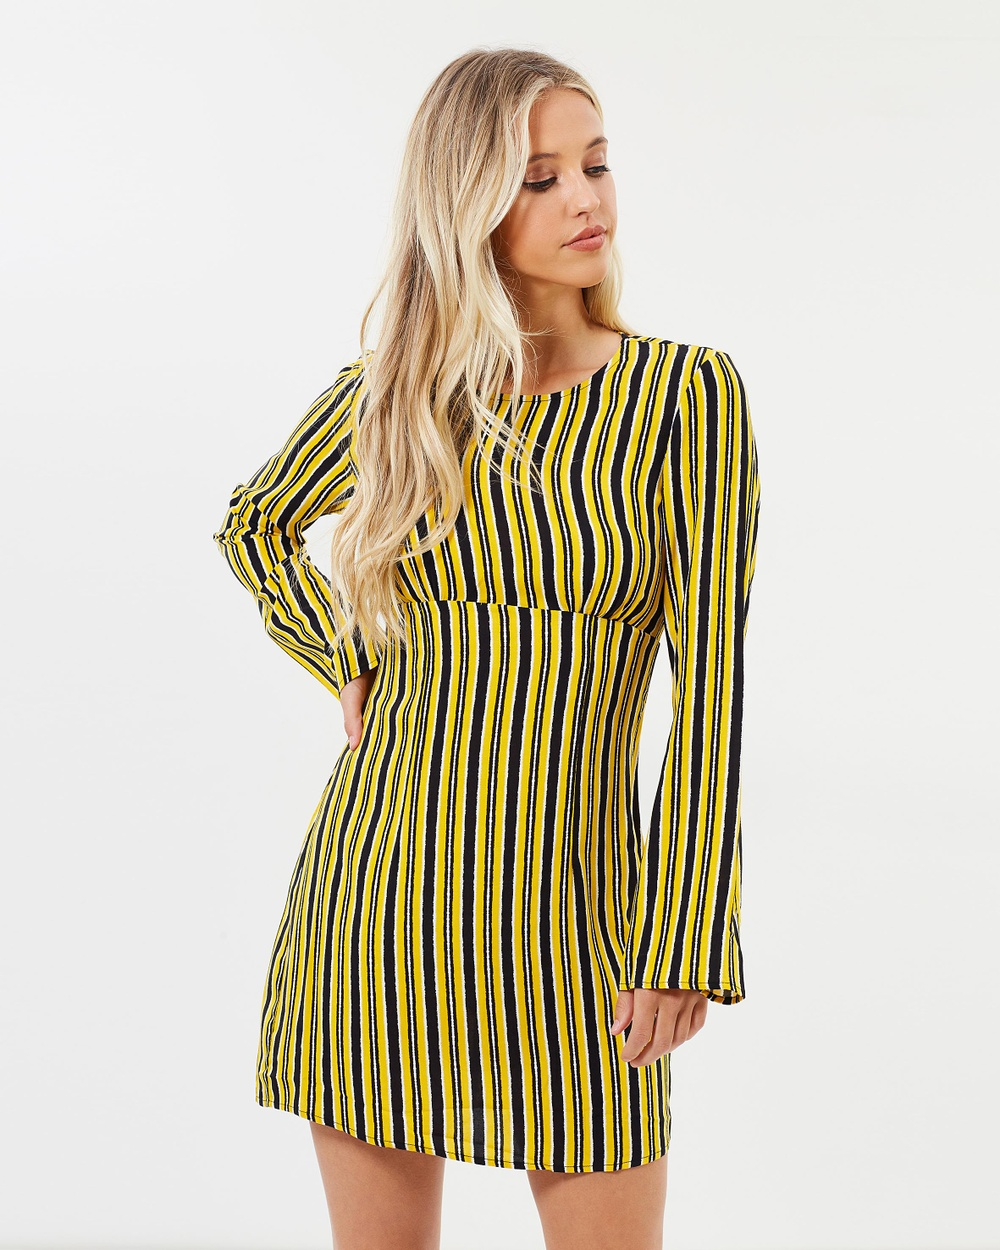 Dazie Walk The Line Dress Dresses Yellow Stripe Walk The Line Dress